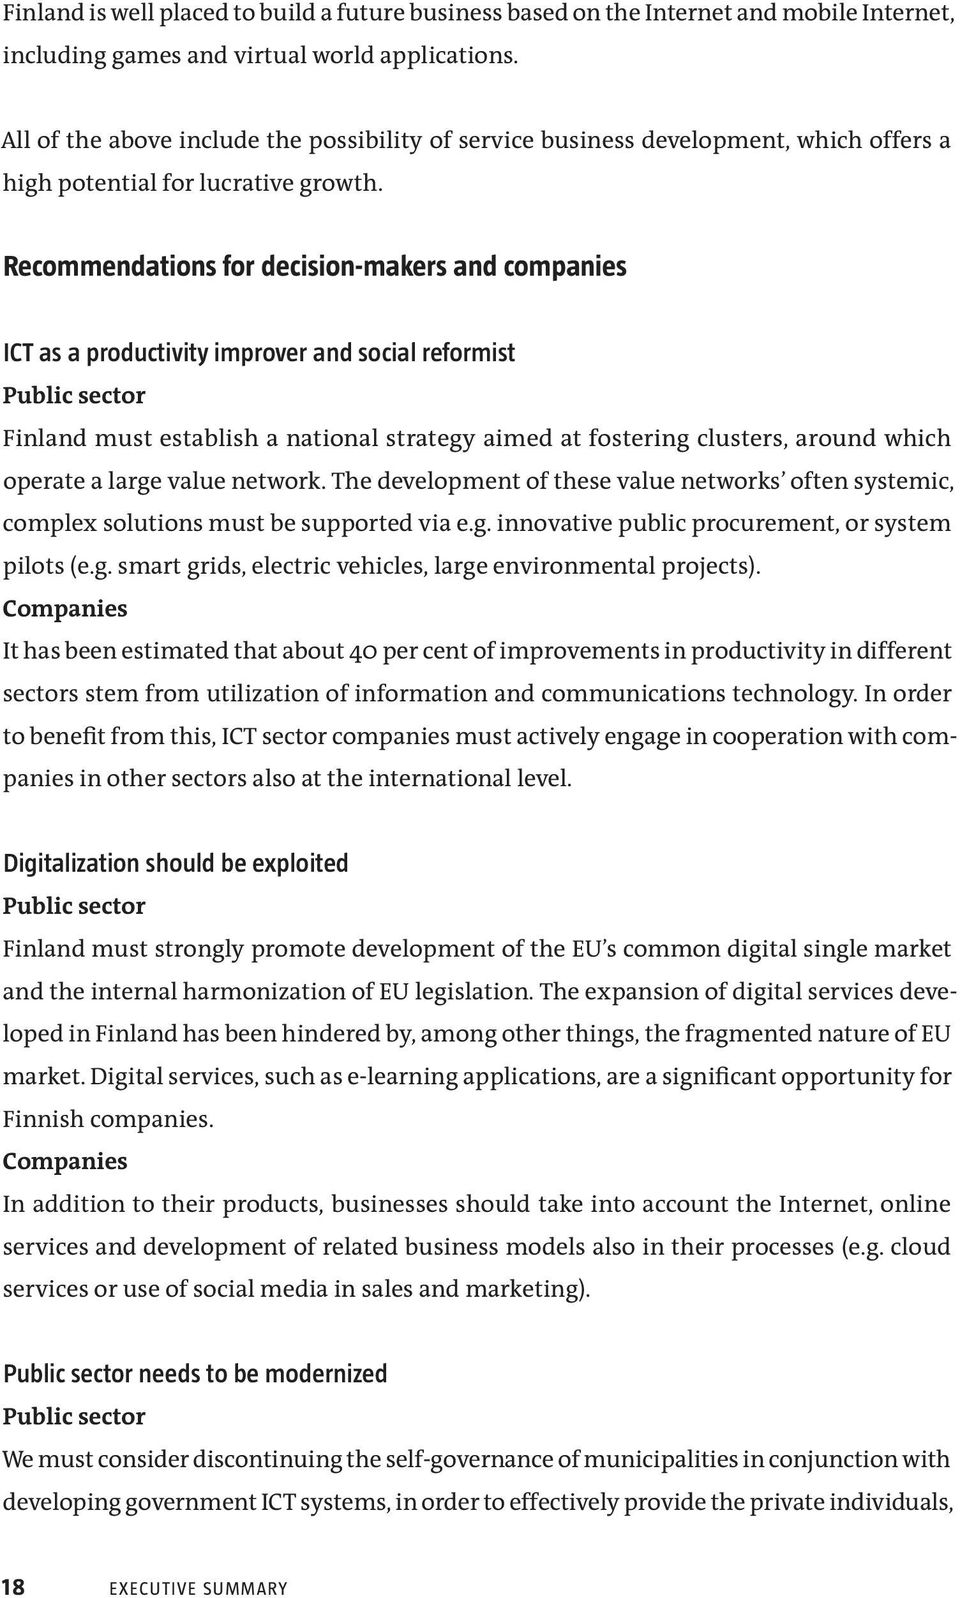 Recommendations for decision-makers and companies ICT as a productivity improver and social reformist Public sector Finland must establish a national strategy aimed at fostering clusters, around